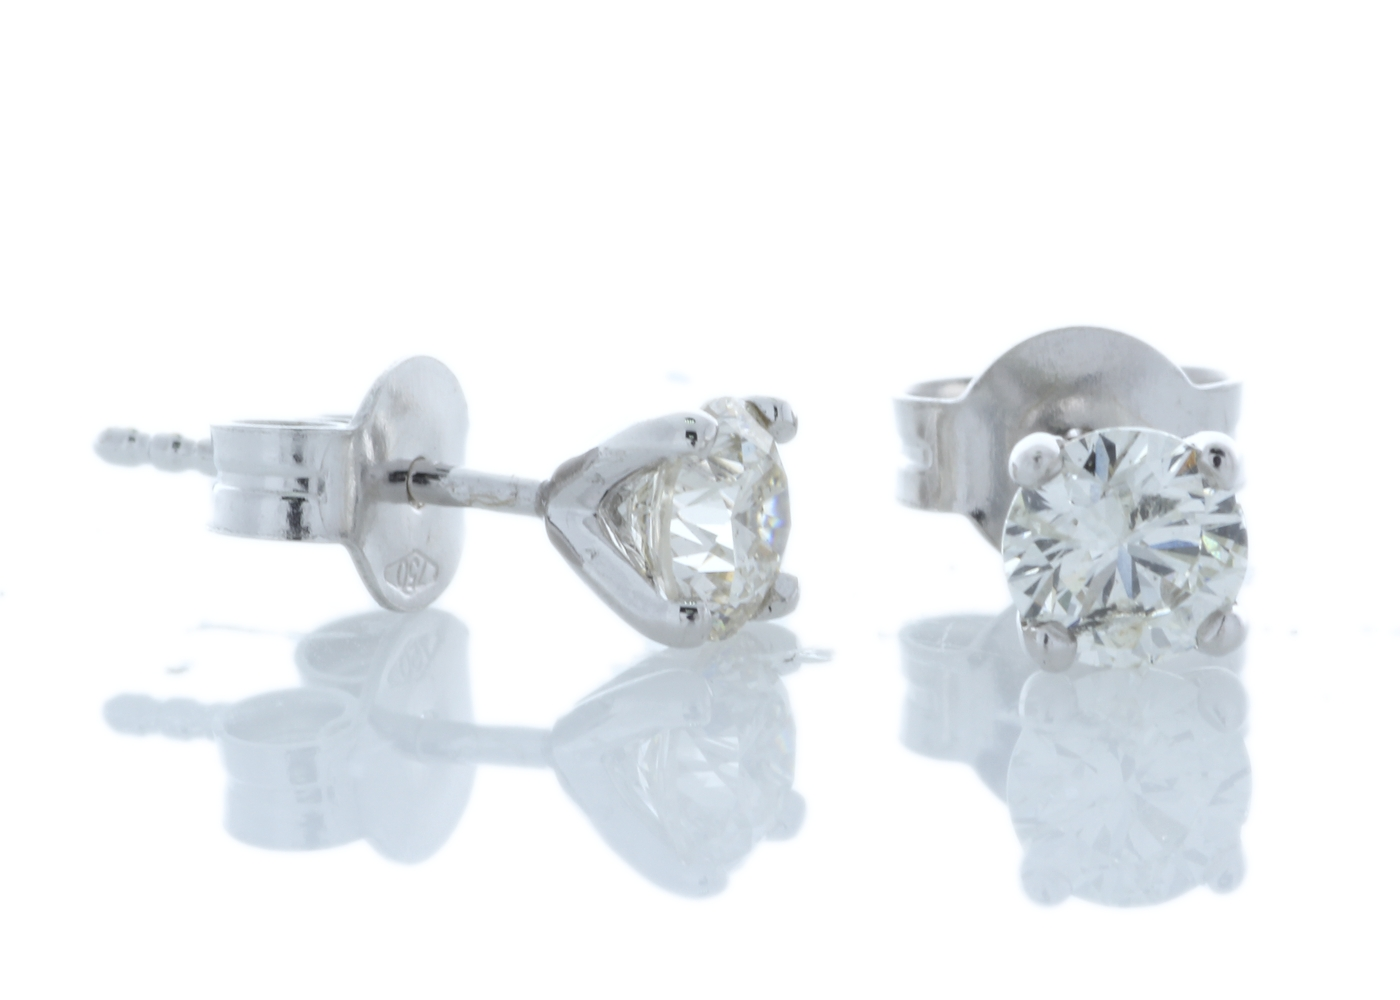 18k White Gold Wire Set Diamond Earrings 0.80 Carats - Image 3 of 4